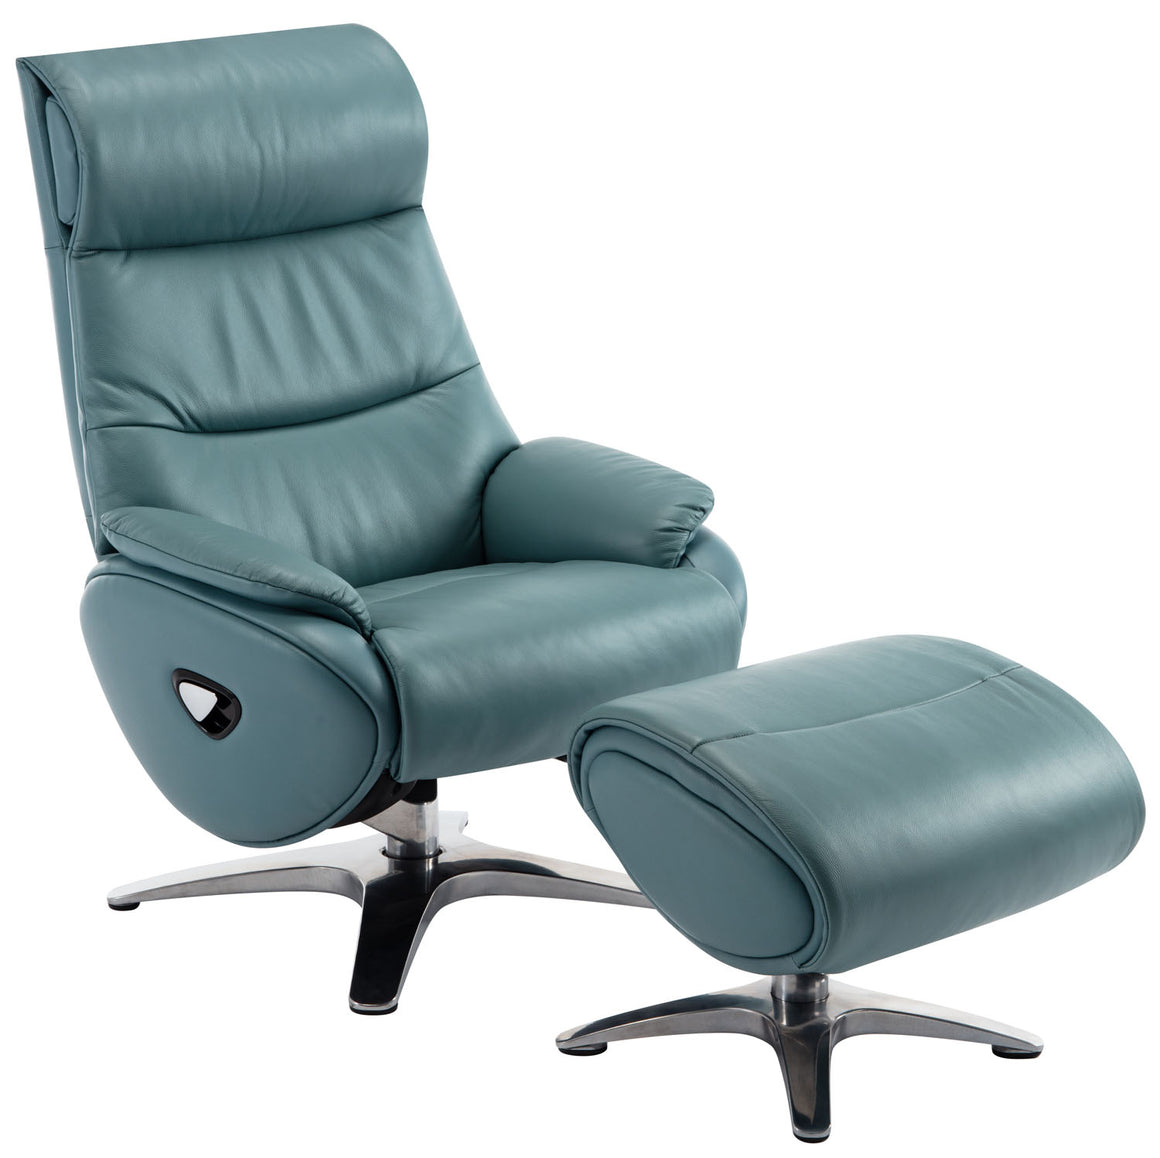 Barcalounger Adler Leather Recliner and Ottoman with Adjustable Headrest